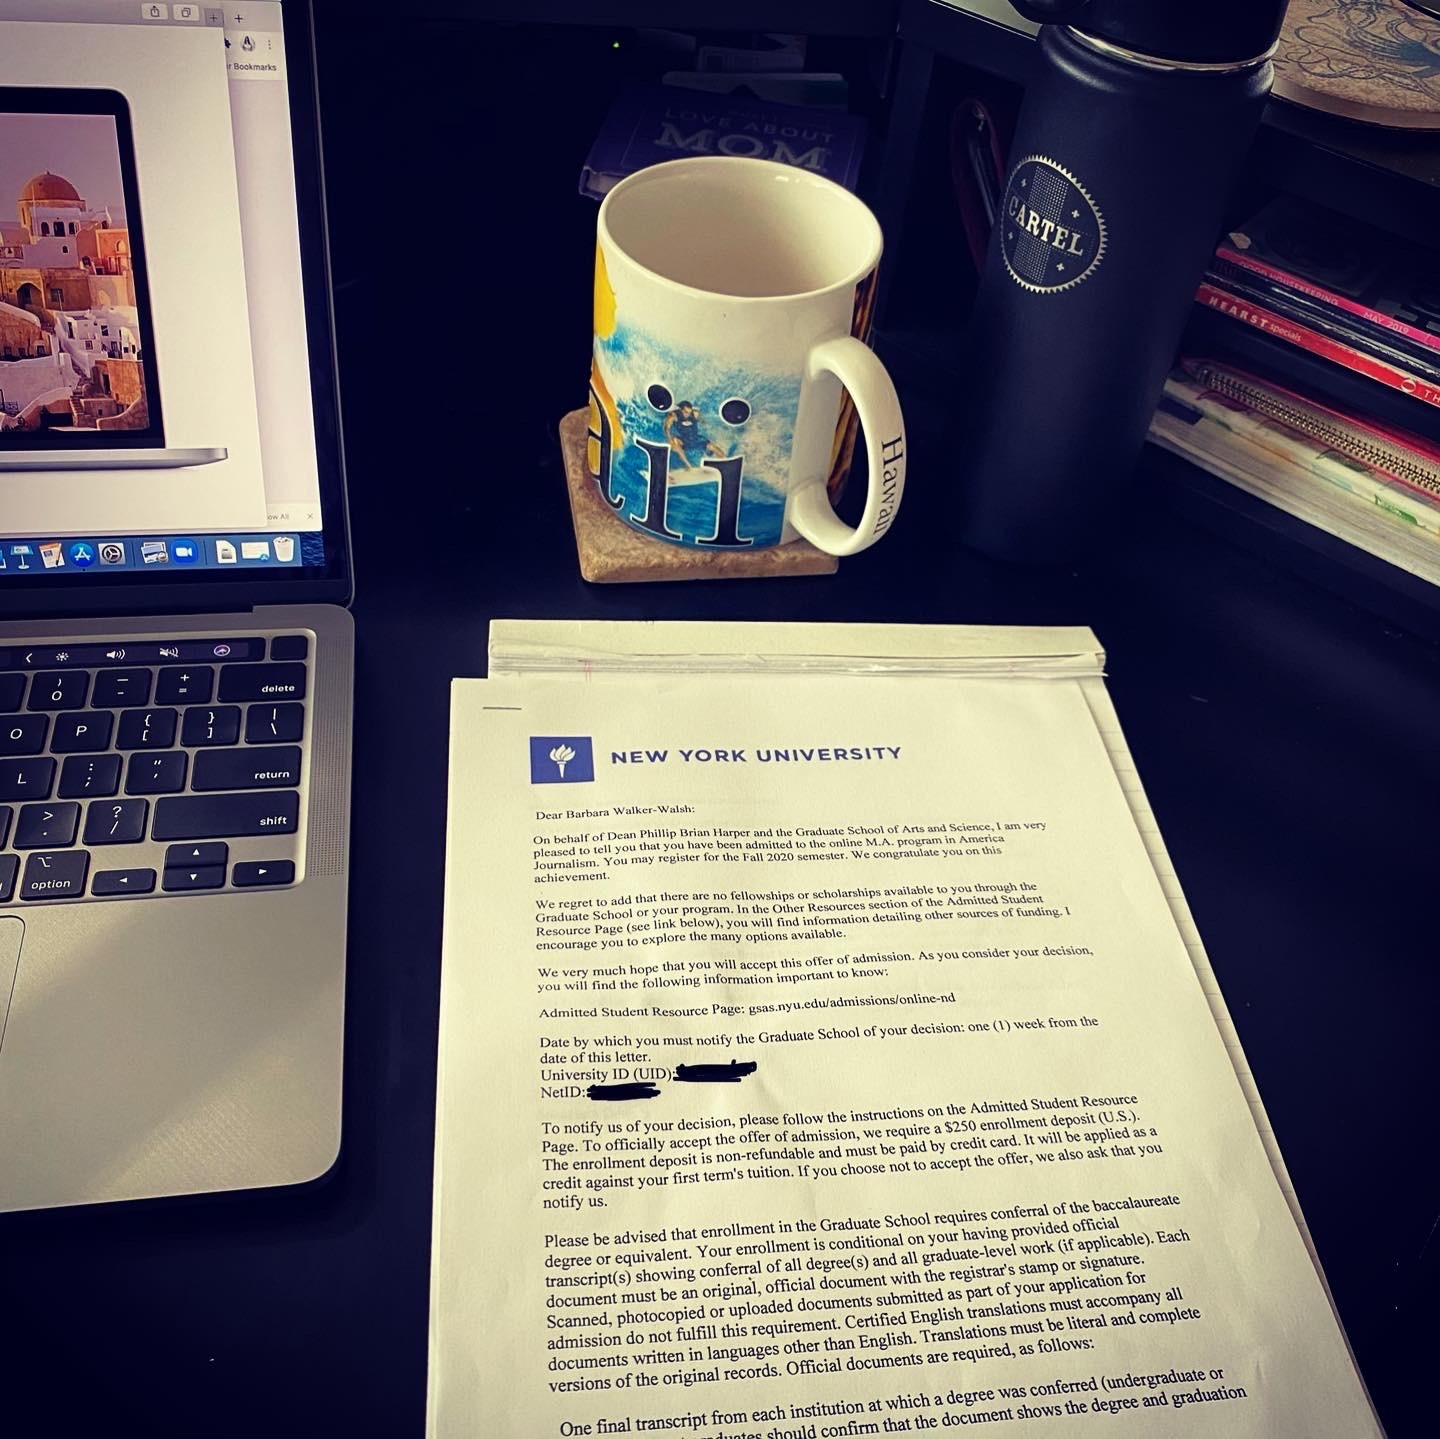 A few of Barbi Walker-Walsh's favorite things: coffee and her NYU acceptance letter. [Photo courtesy of Barbi Walker-Walsh]